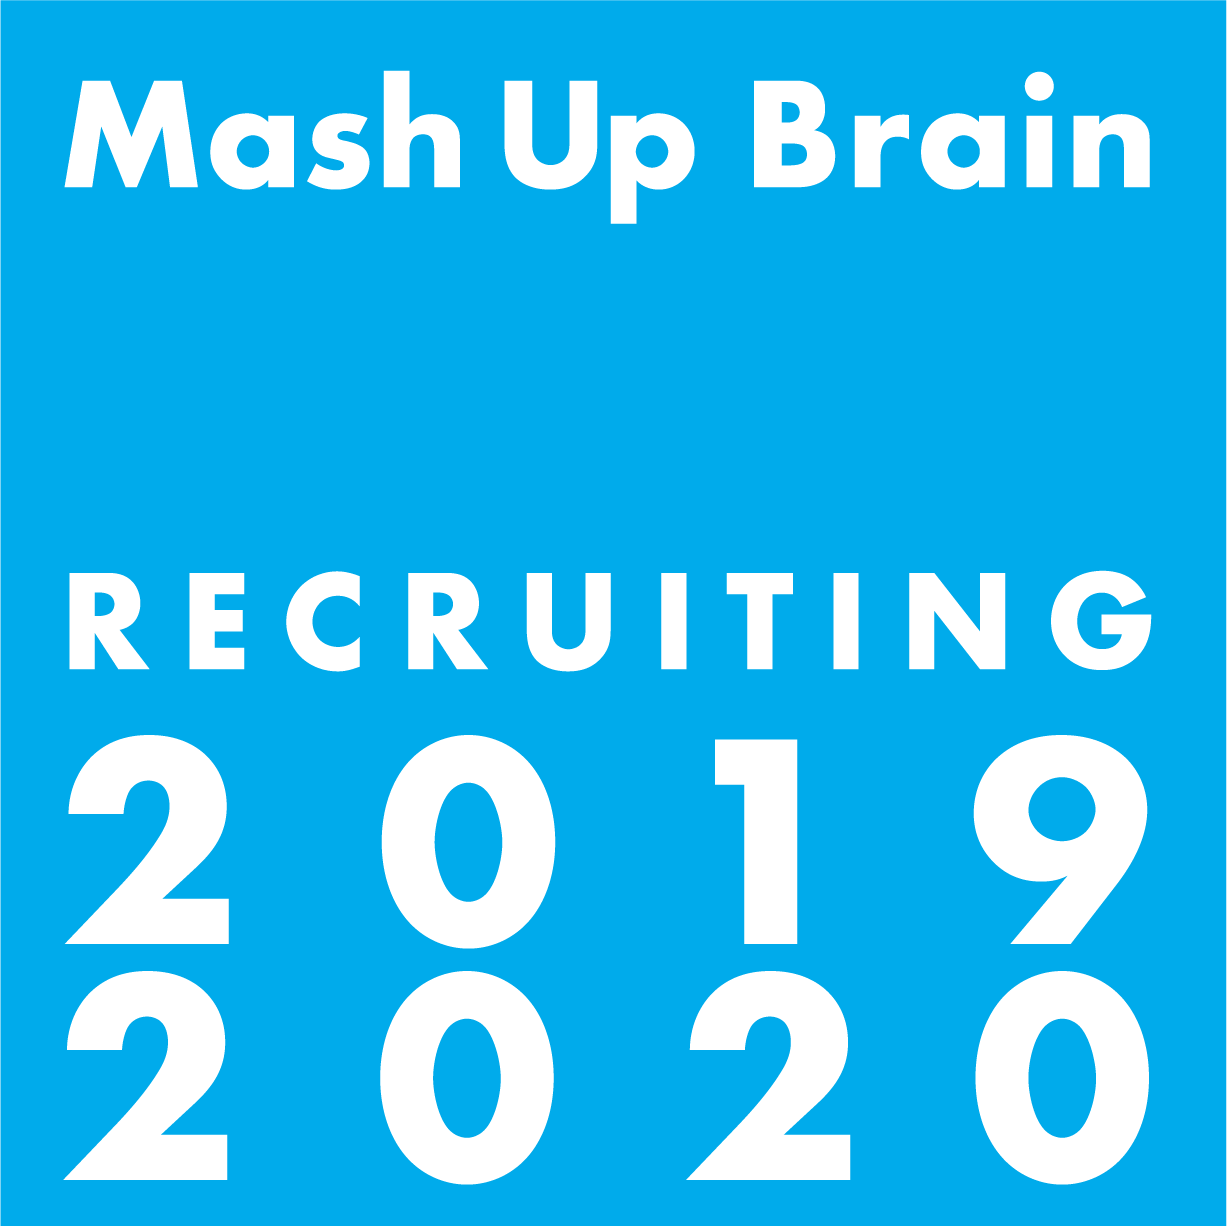 [バッジ]recruiting-mash up brain/ロゴマーク